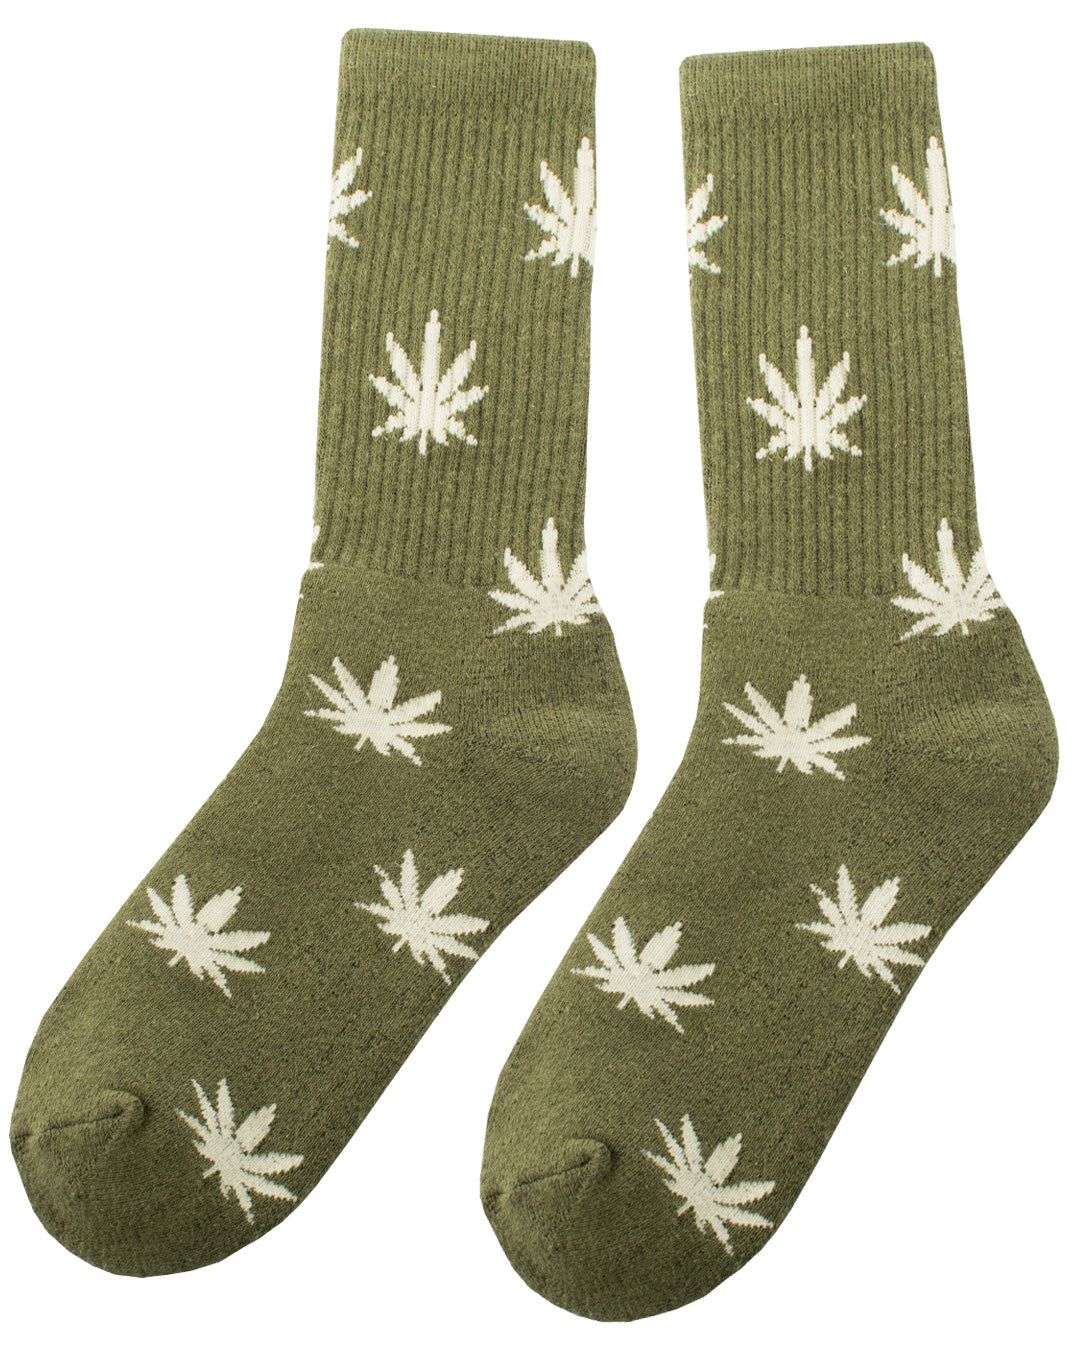 Hope Leaf Green - Organic Hemp Socks